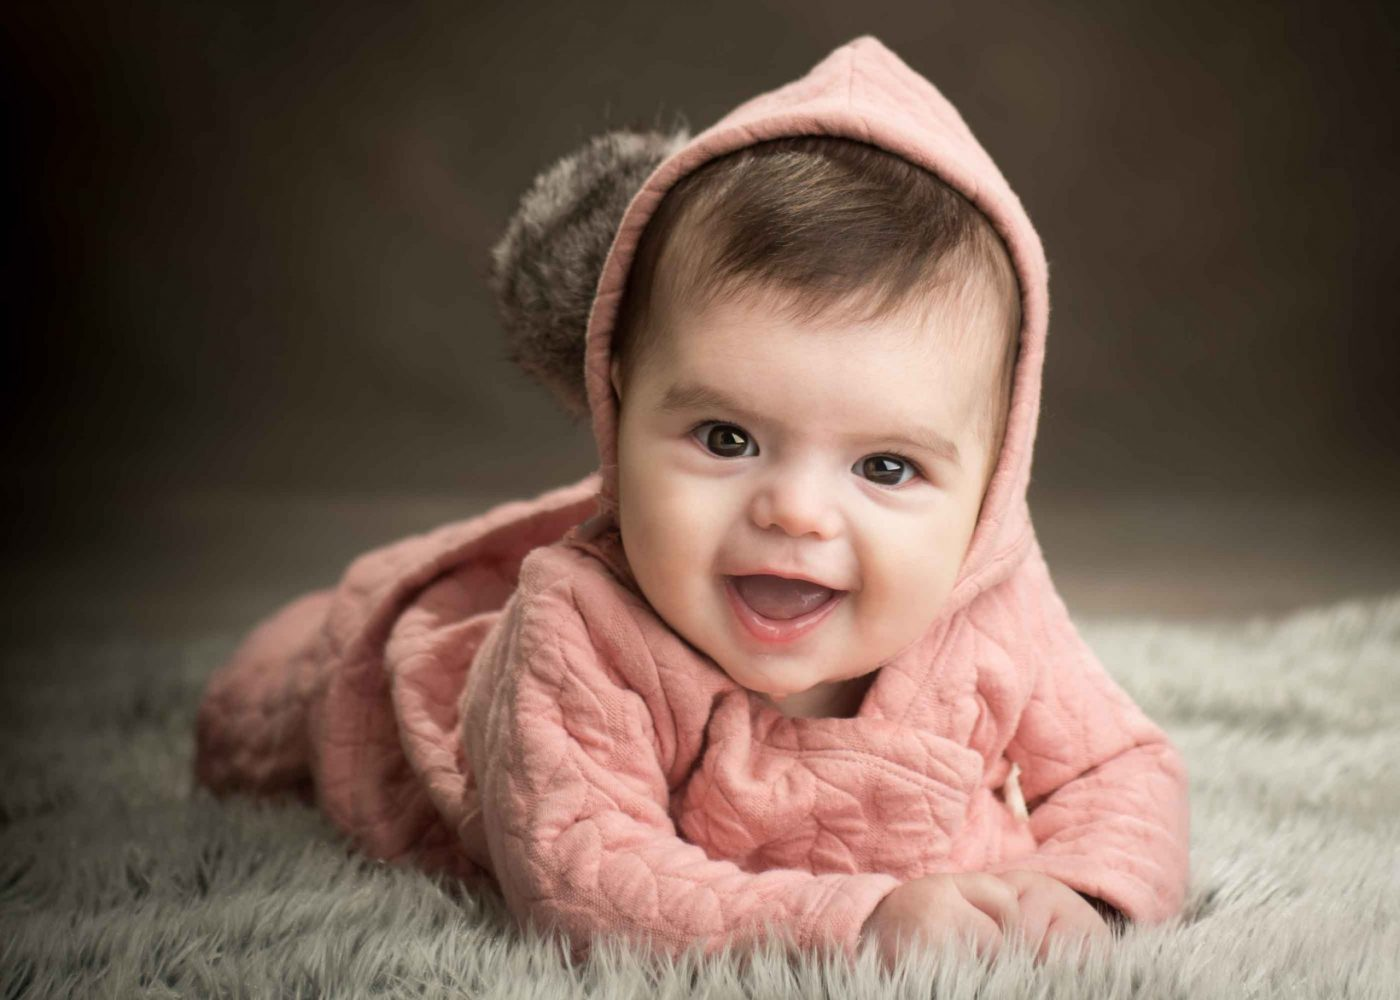 Baby girl with bonnet and matching ooutfit in Picadilly Studios for photo session in Boro Park, Brooklyn, NY